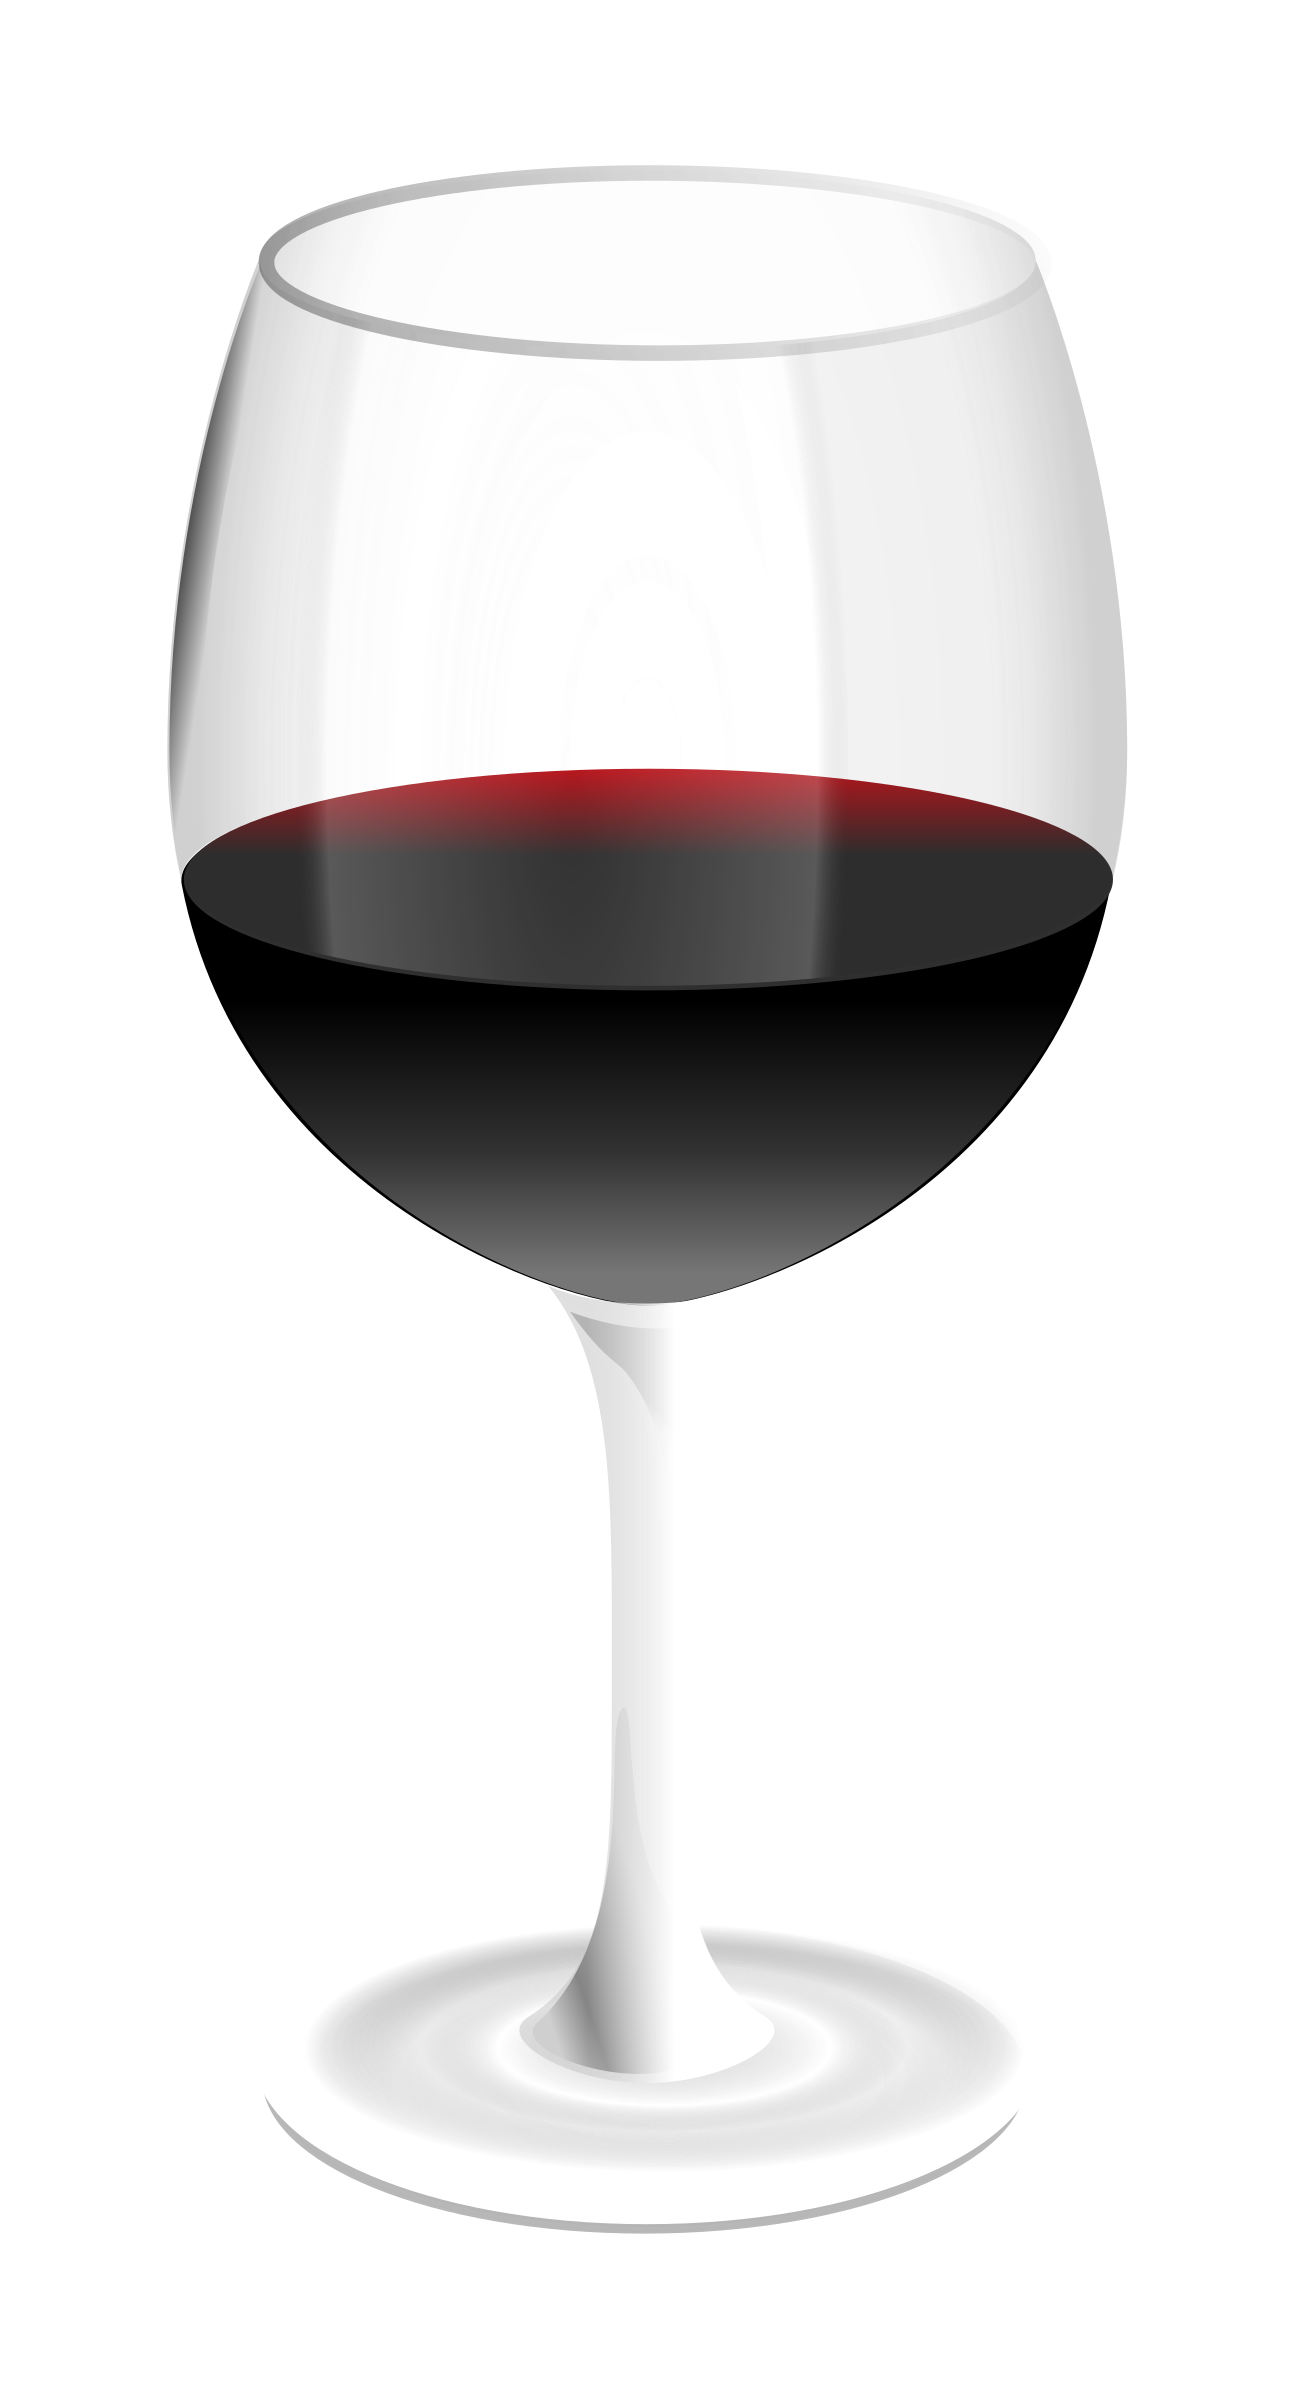 Big Image (Png) - Glass Of Wine, Transparent background PNG HD thumbnail